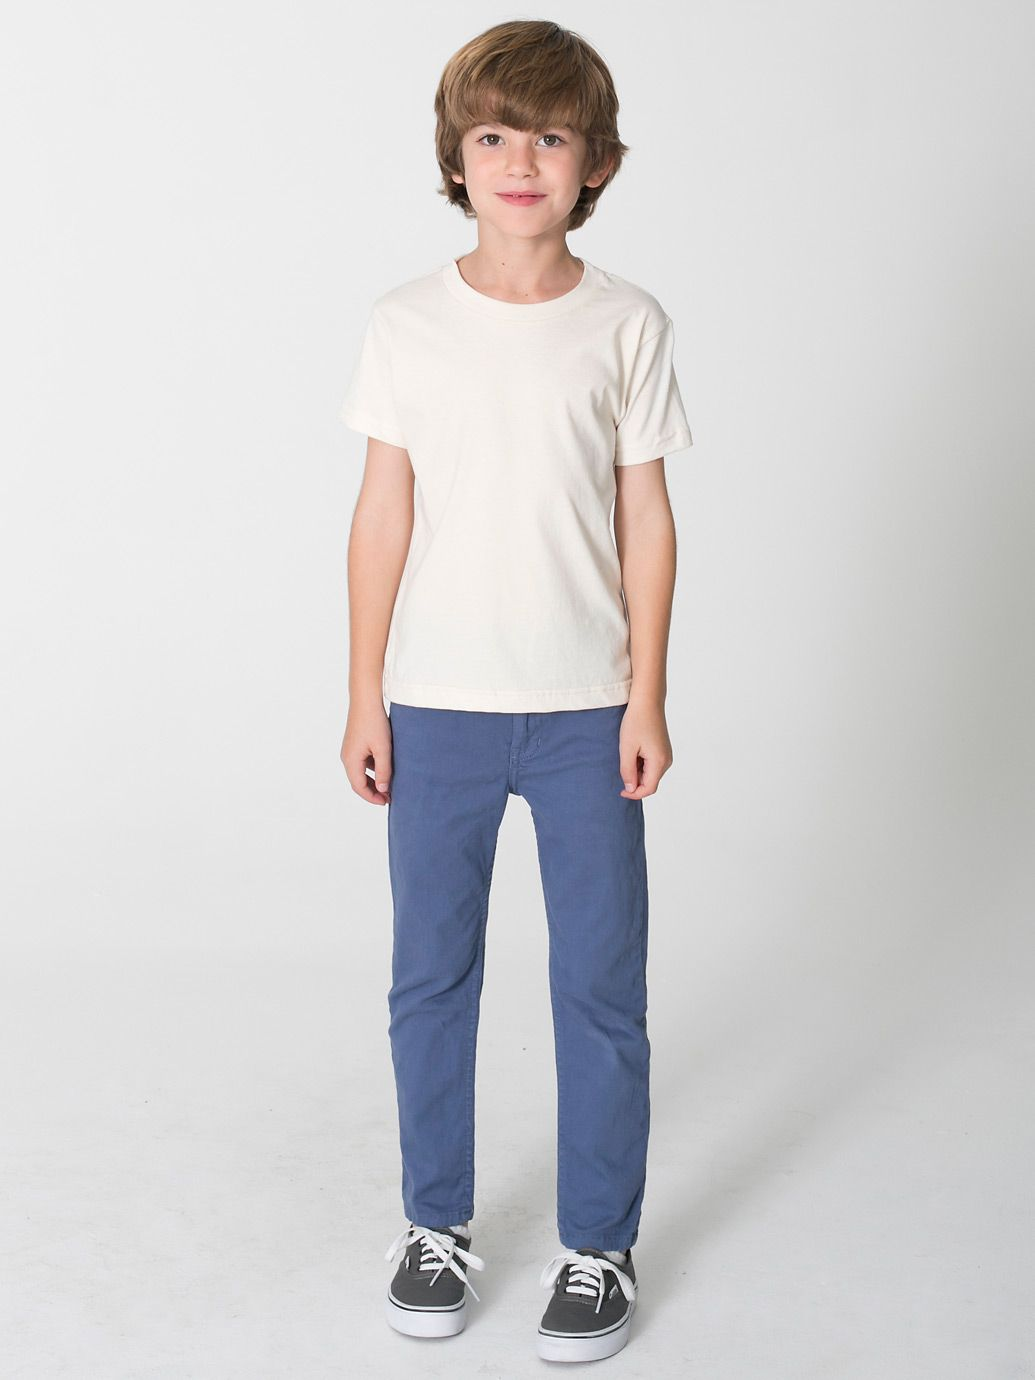 American Apparel Skinny Pants For My Skinny Boys For The Boys